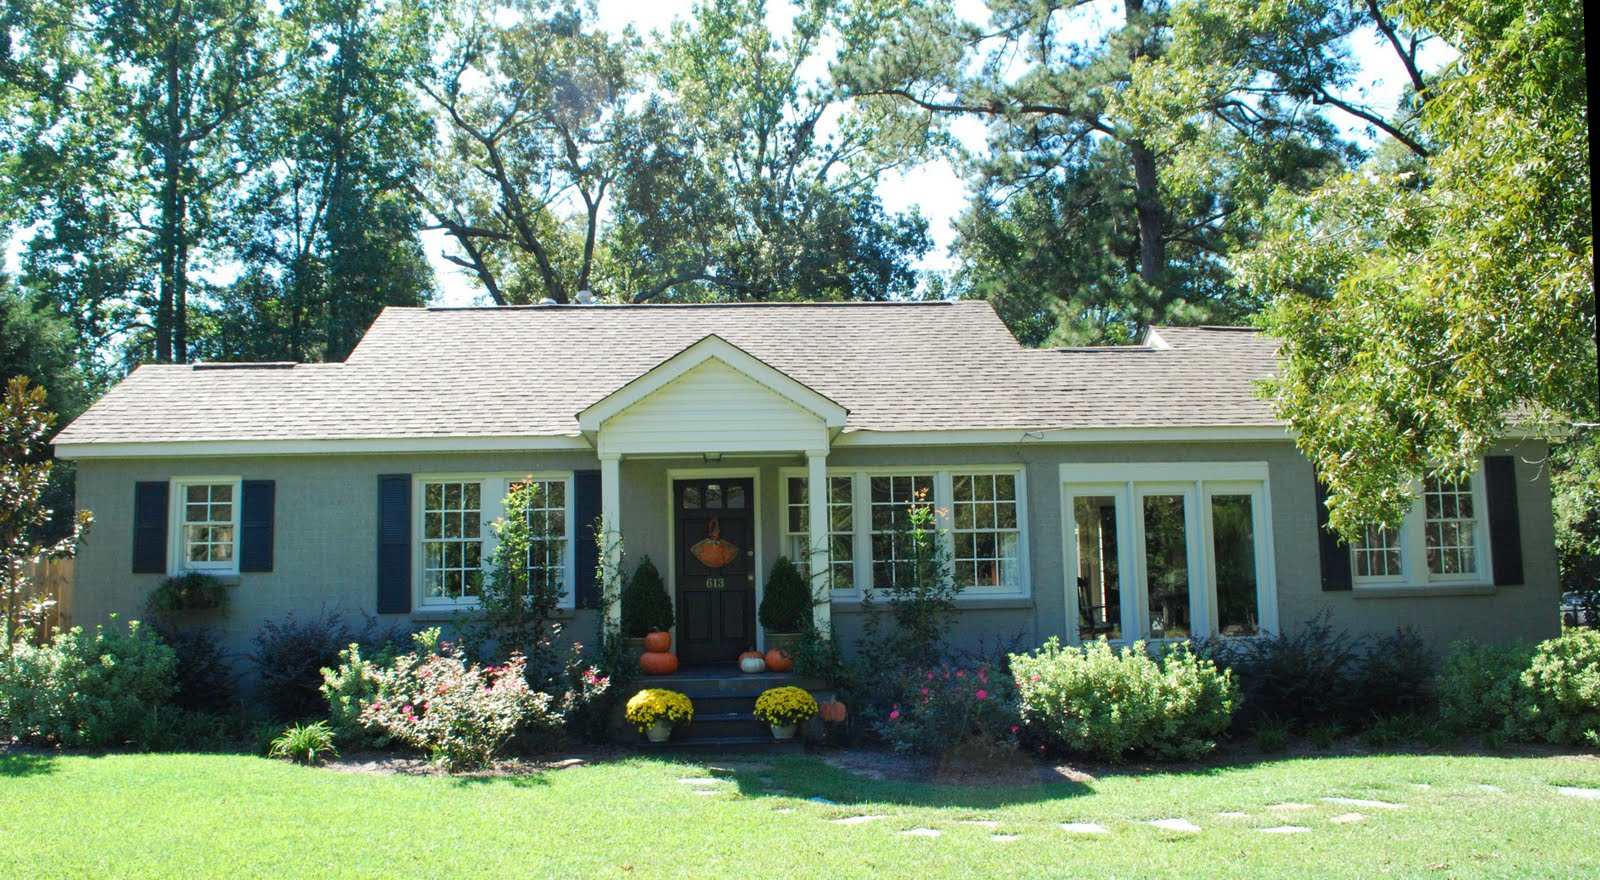 Exterior Paint Colors For Brick Homes | Home Painting Ideas on Brick House Painting Ideas  id=71472